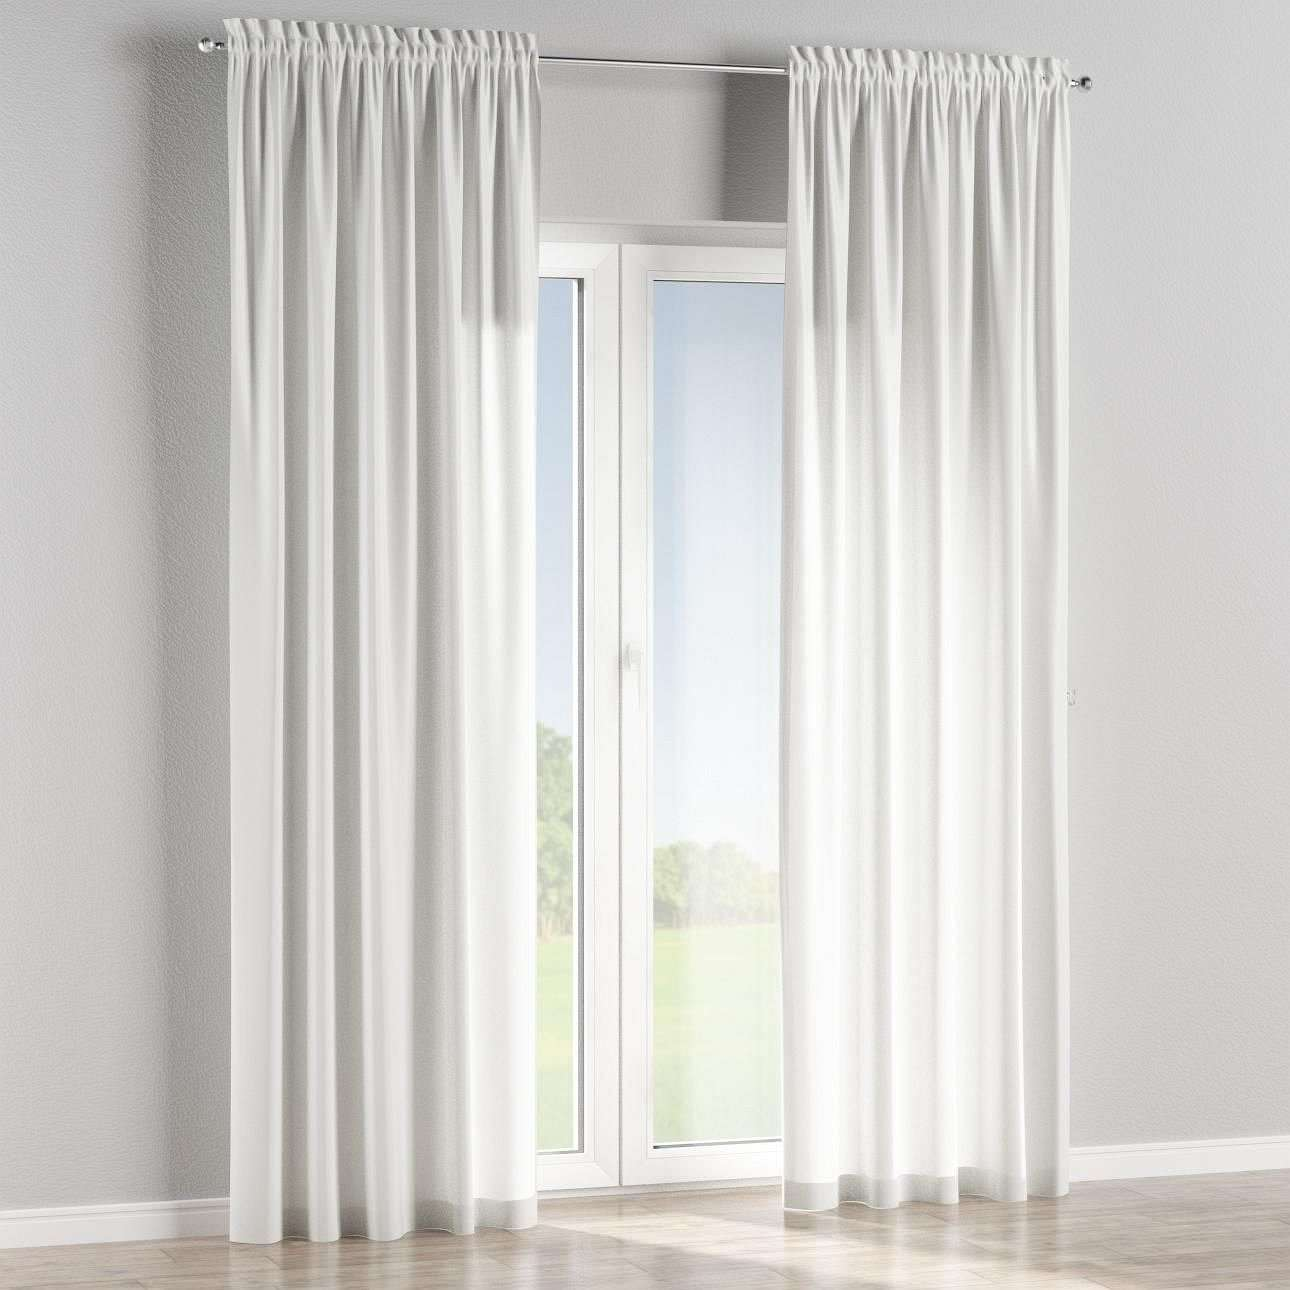 Slot and frill curtains in collection Flowers, fabric: 303-01